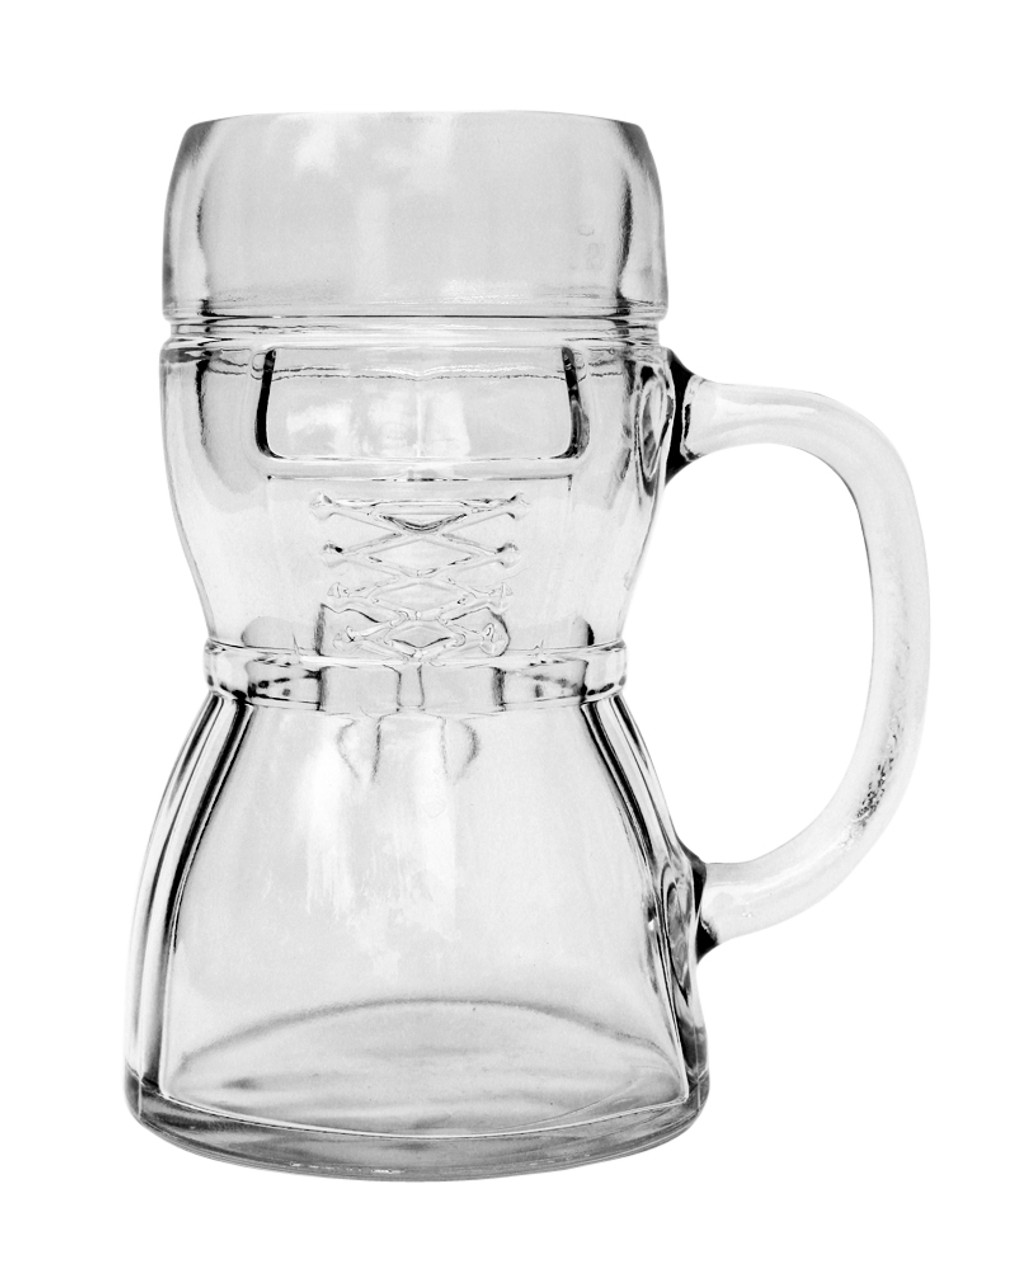 Front of Empty Half Liter Dirndl Glass Beer Mug, Showing Laces and Apron